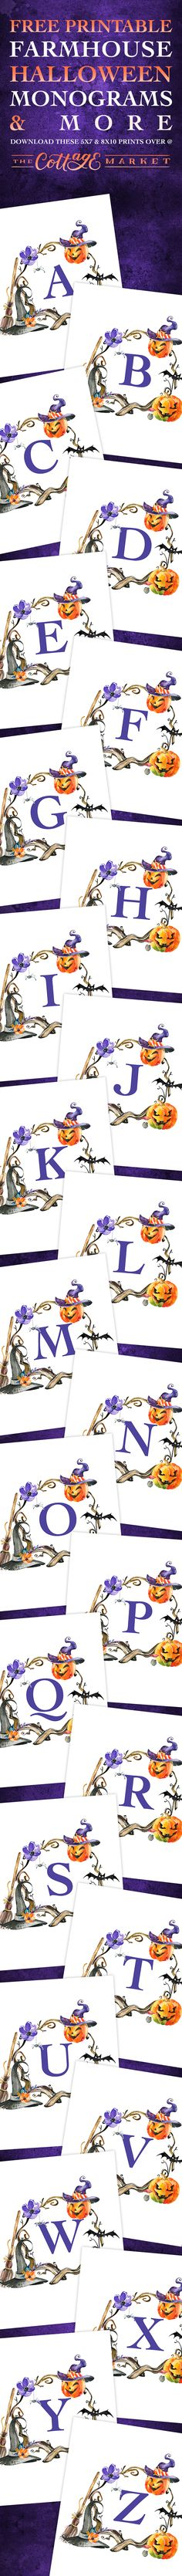 Hi there! It is once again Friday my friends and that means it is Free Printable Friday here at The Cottage Market! This week we are going to give you a head start on your Halloween Decorating with this full set of Free Printable Farmhouse Halloween Monograms and More! You can use these Framed to …